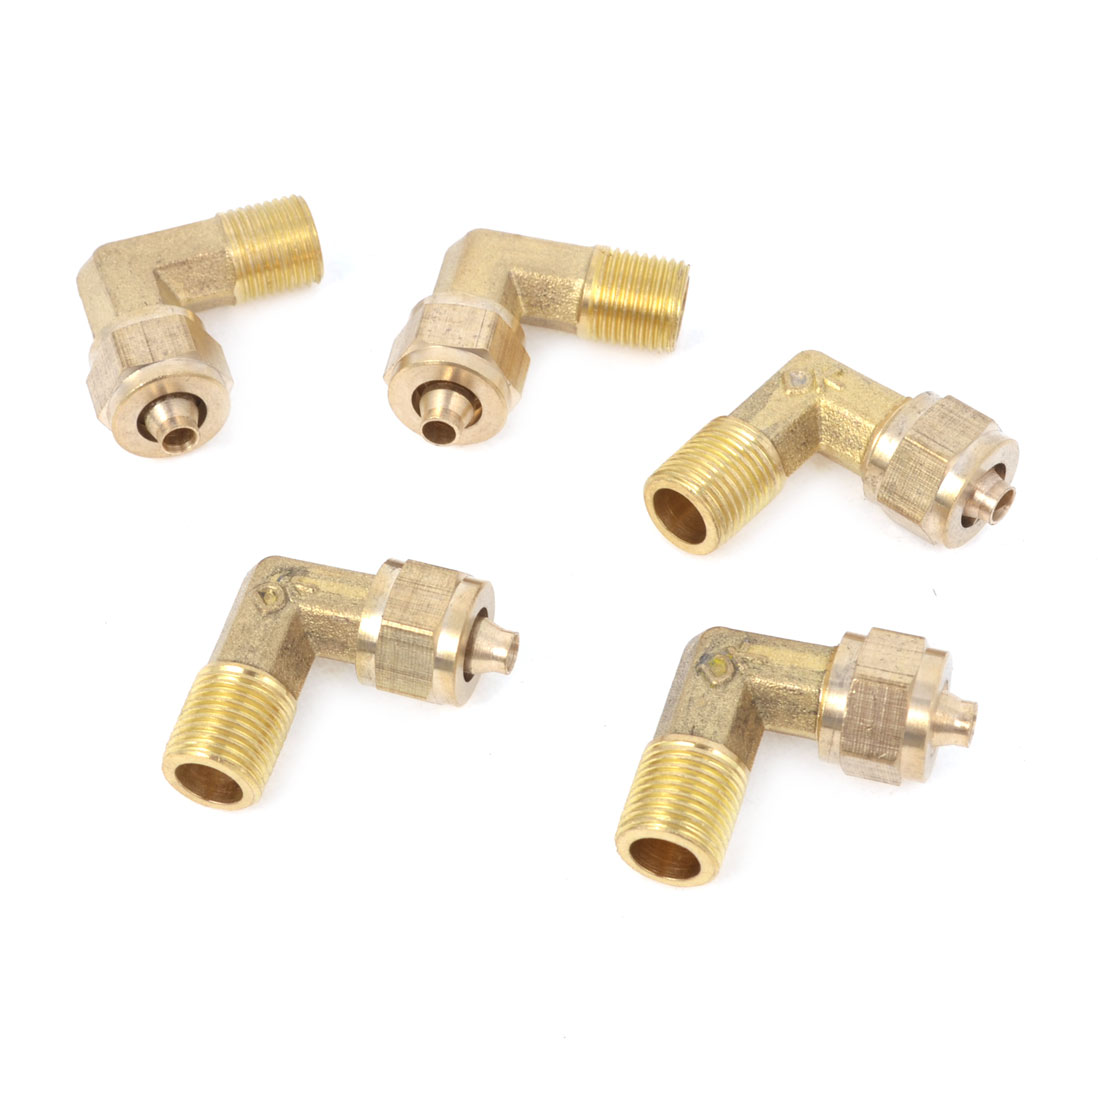 5 Pcs Brass 1/8PT Thread Pneumatic Pipe Hose Brass Quick Coupler Connector